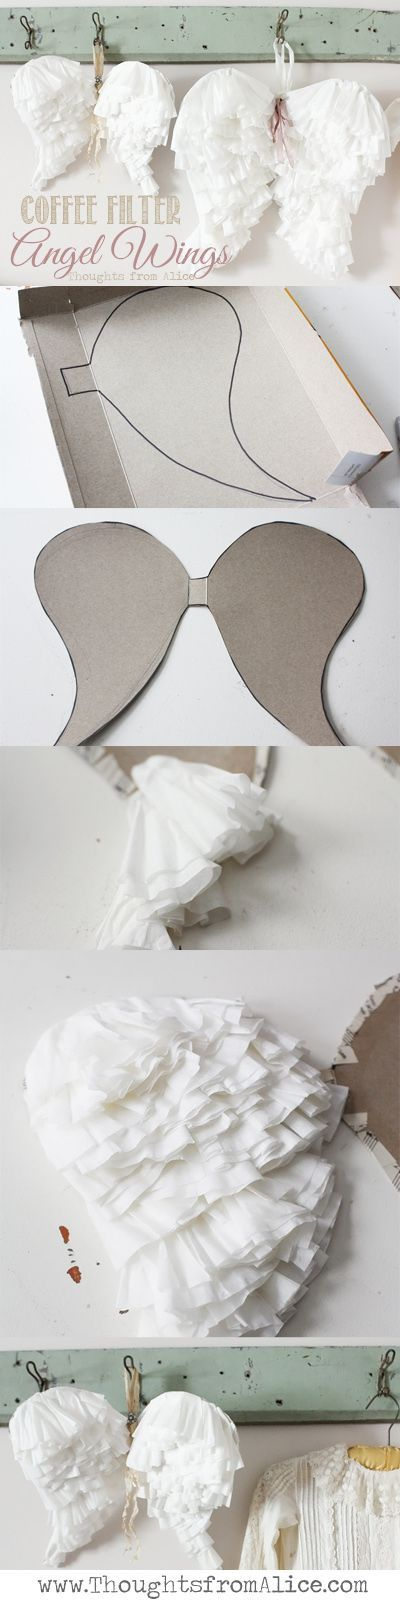 Coffee Filter Angel Wings Craft #Tutorial #DIY